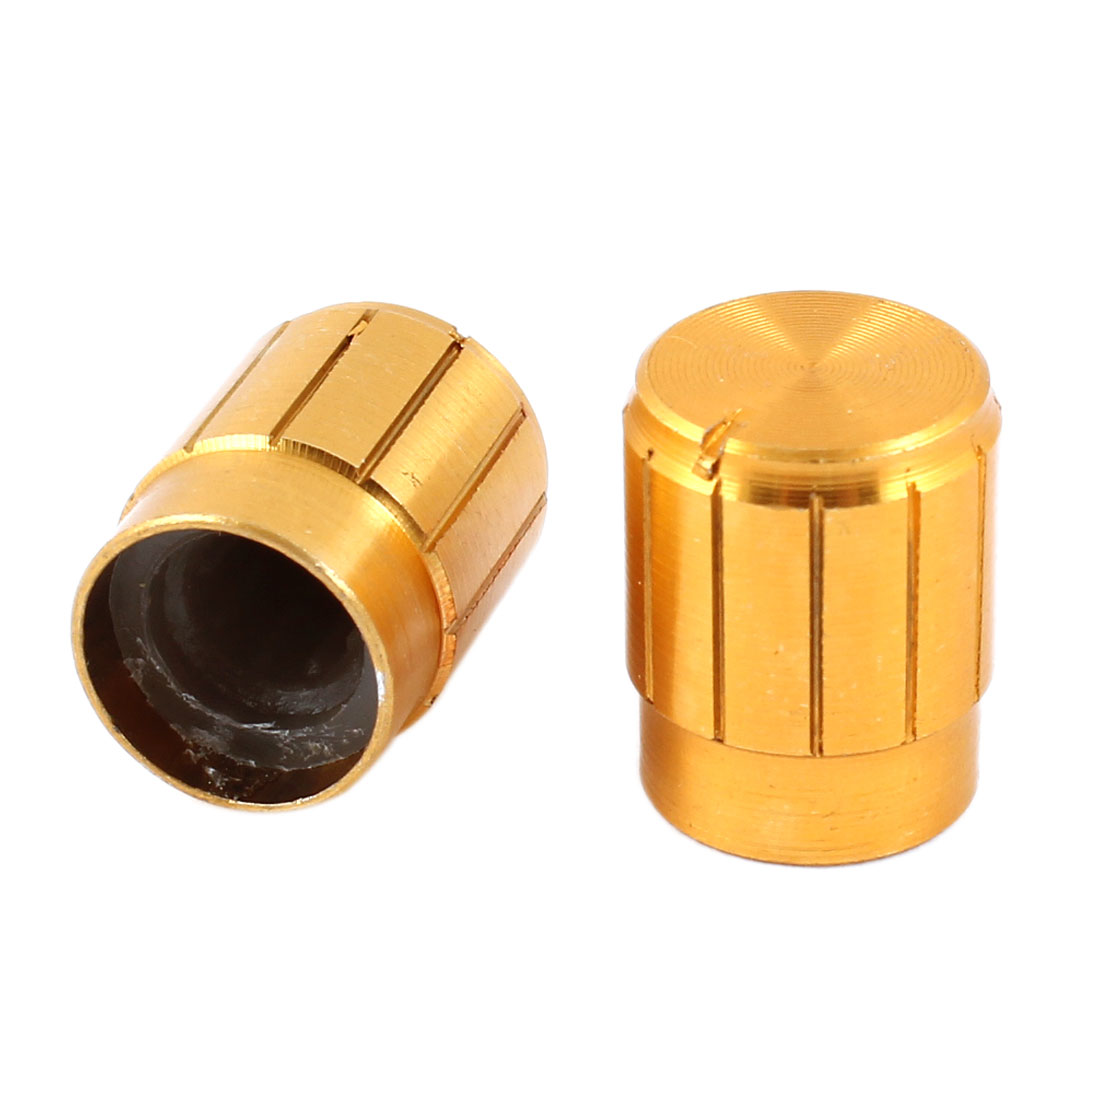 2 Pcs Gold Tone 6mm Control Shaft Rotary Aluminum Potentiometer Knobs